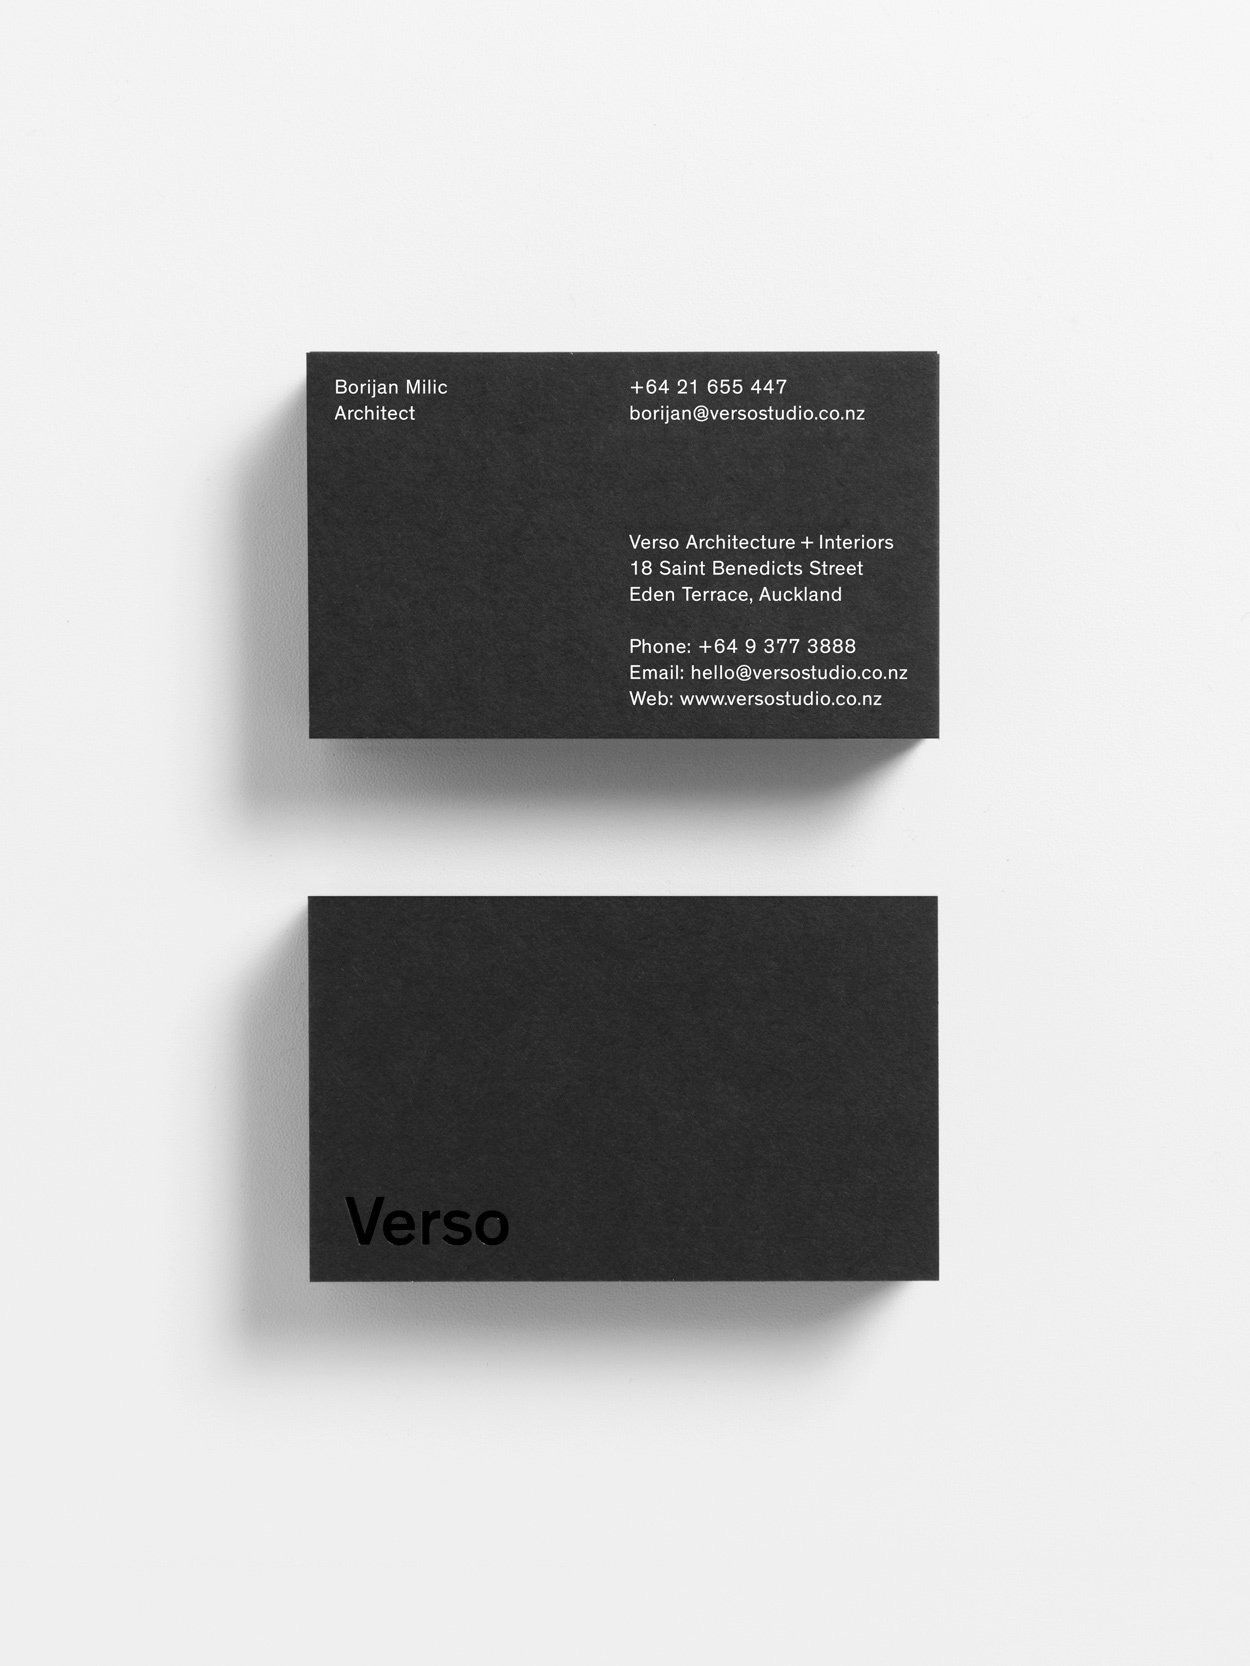 Pin by Γουβιανάκης Νίκος on Business cards | Pinterest | Business ...